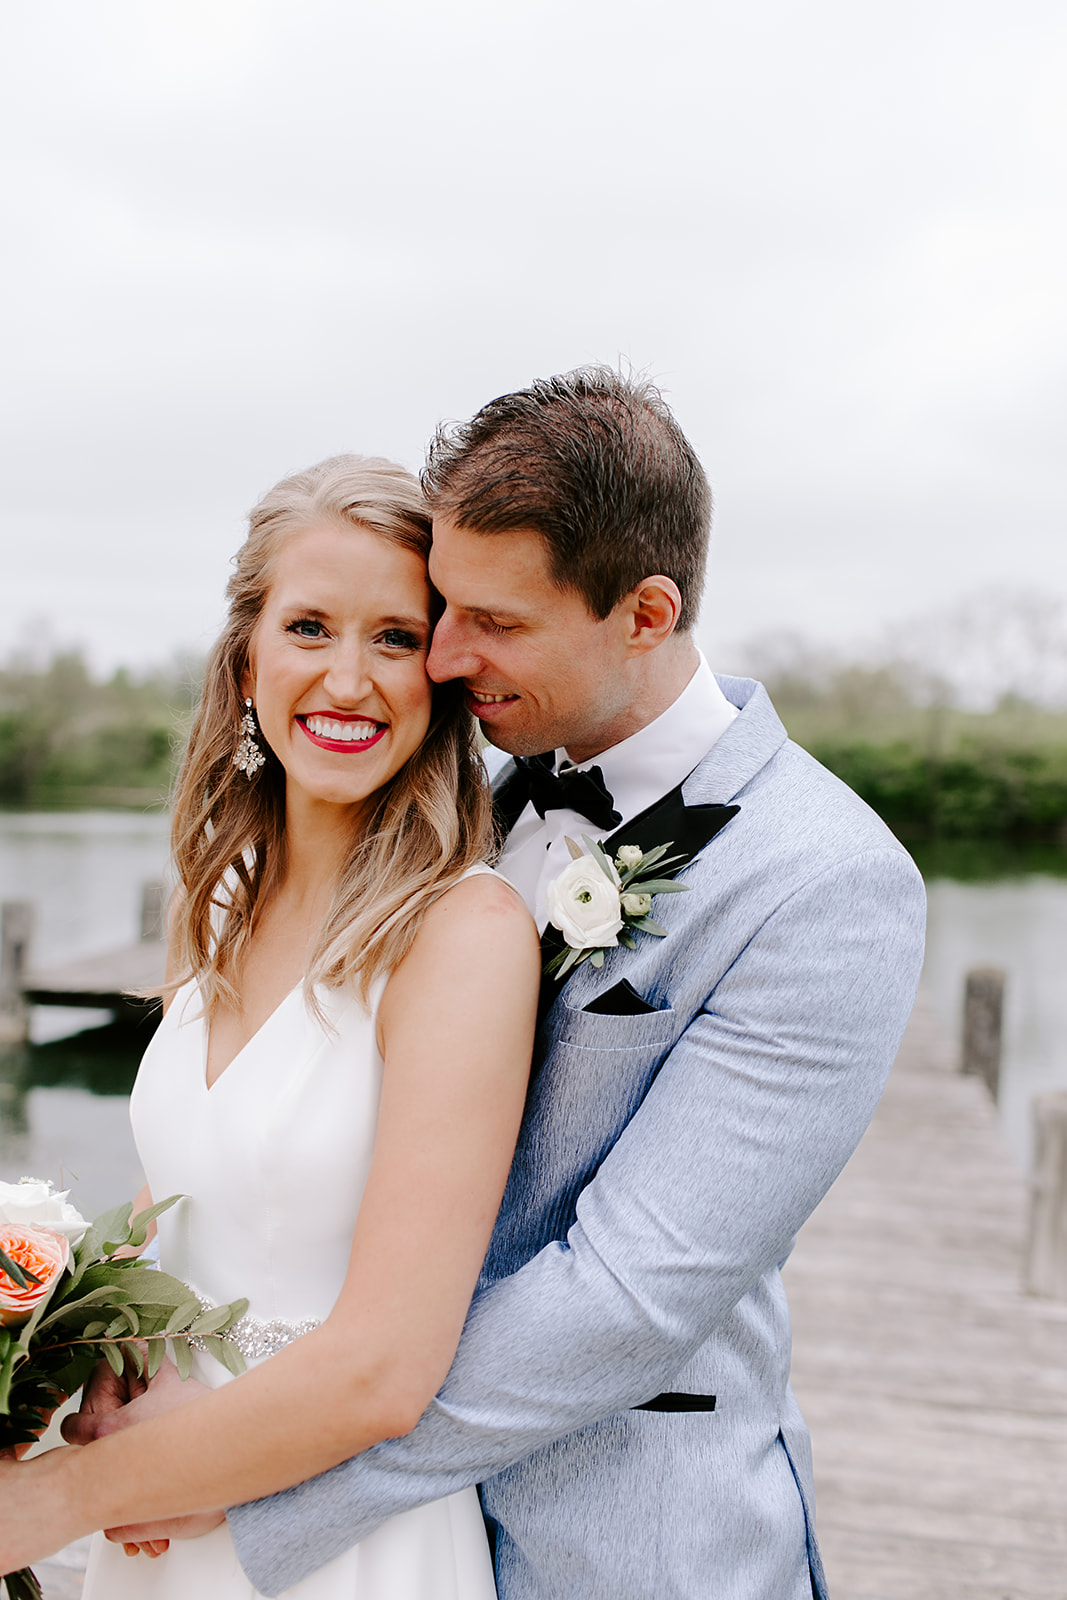 Bride and groom portraits, Indiana wedding